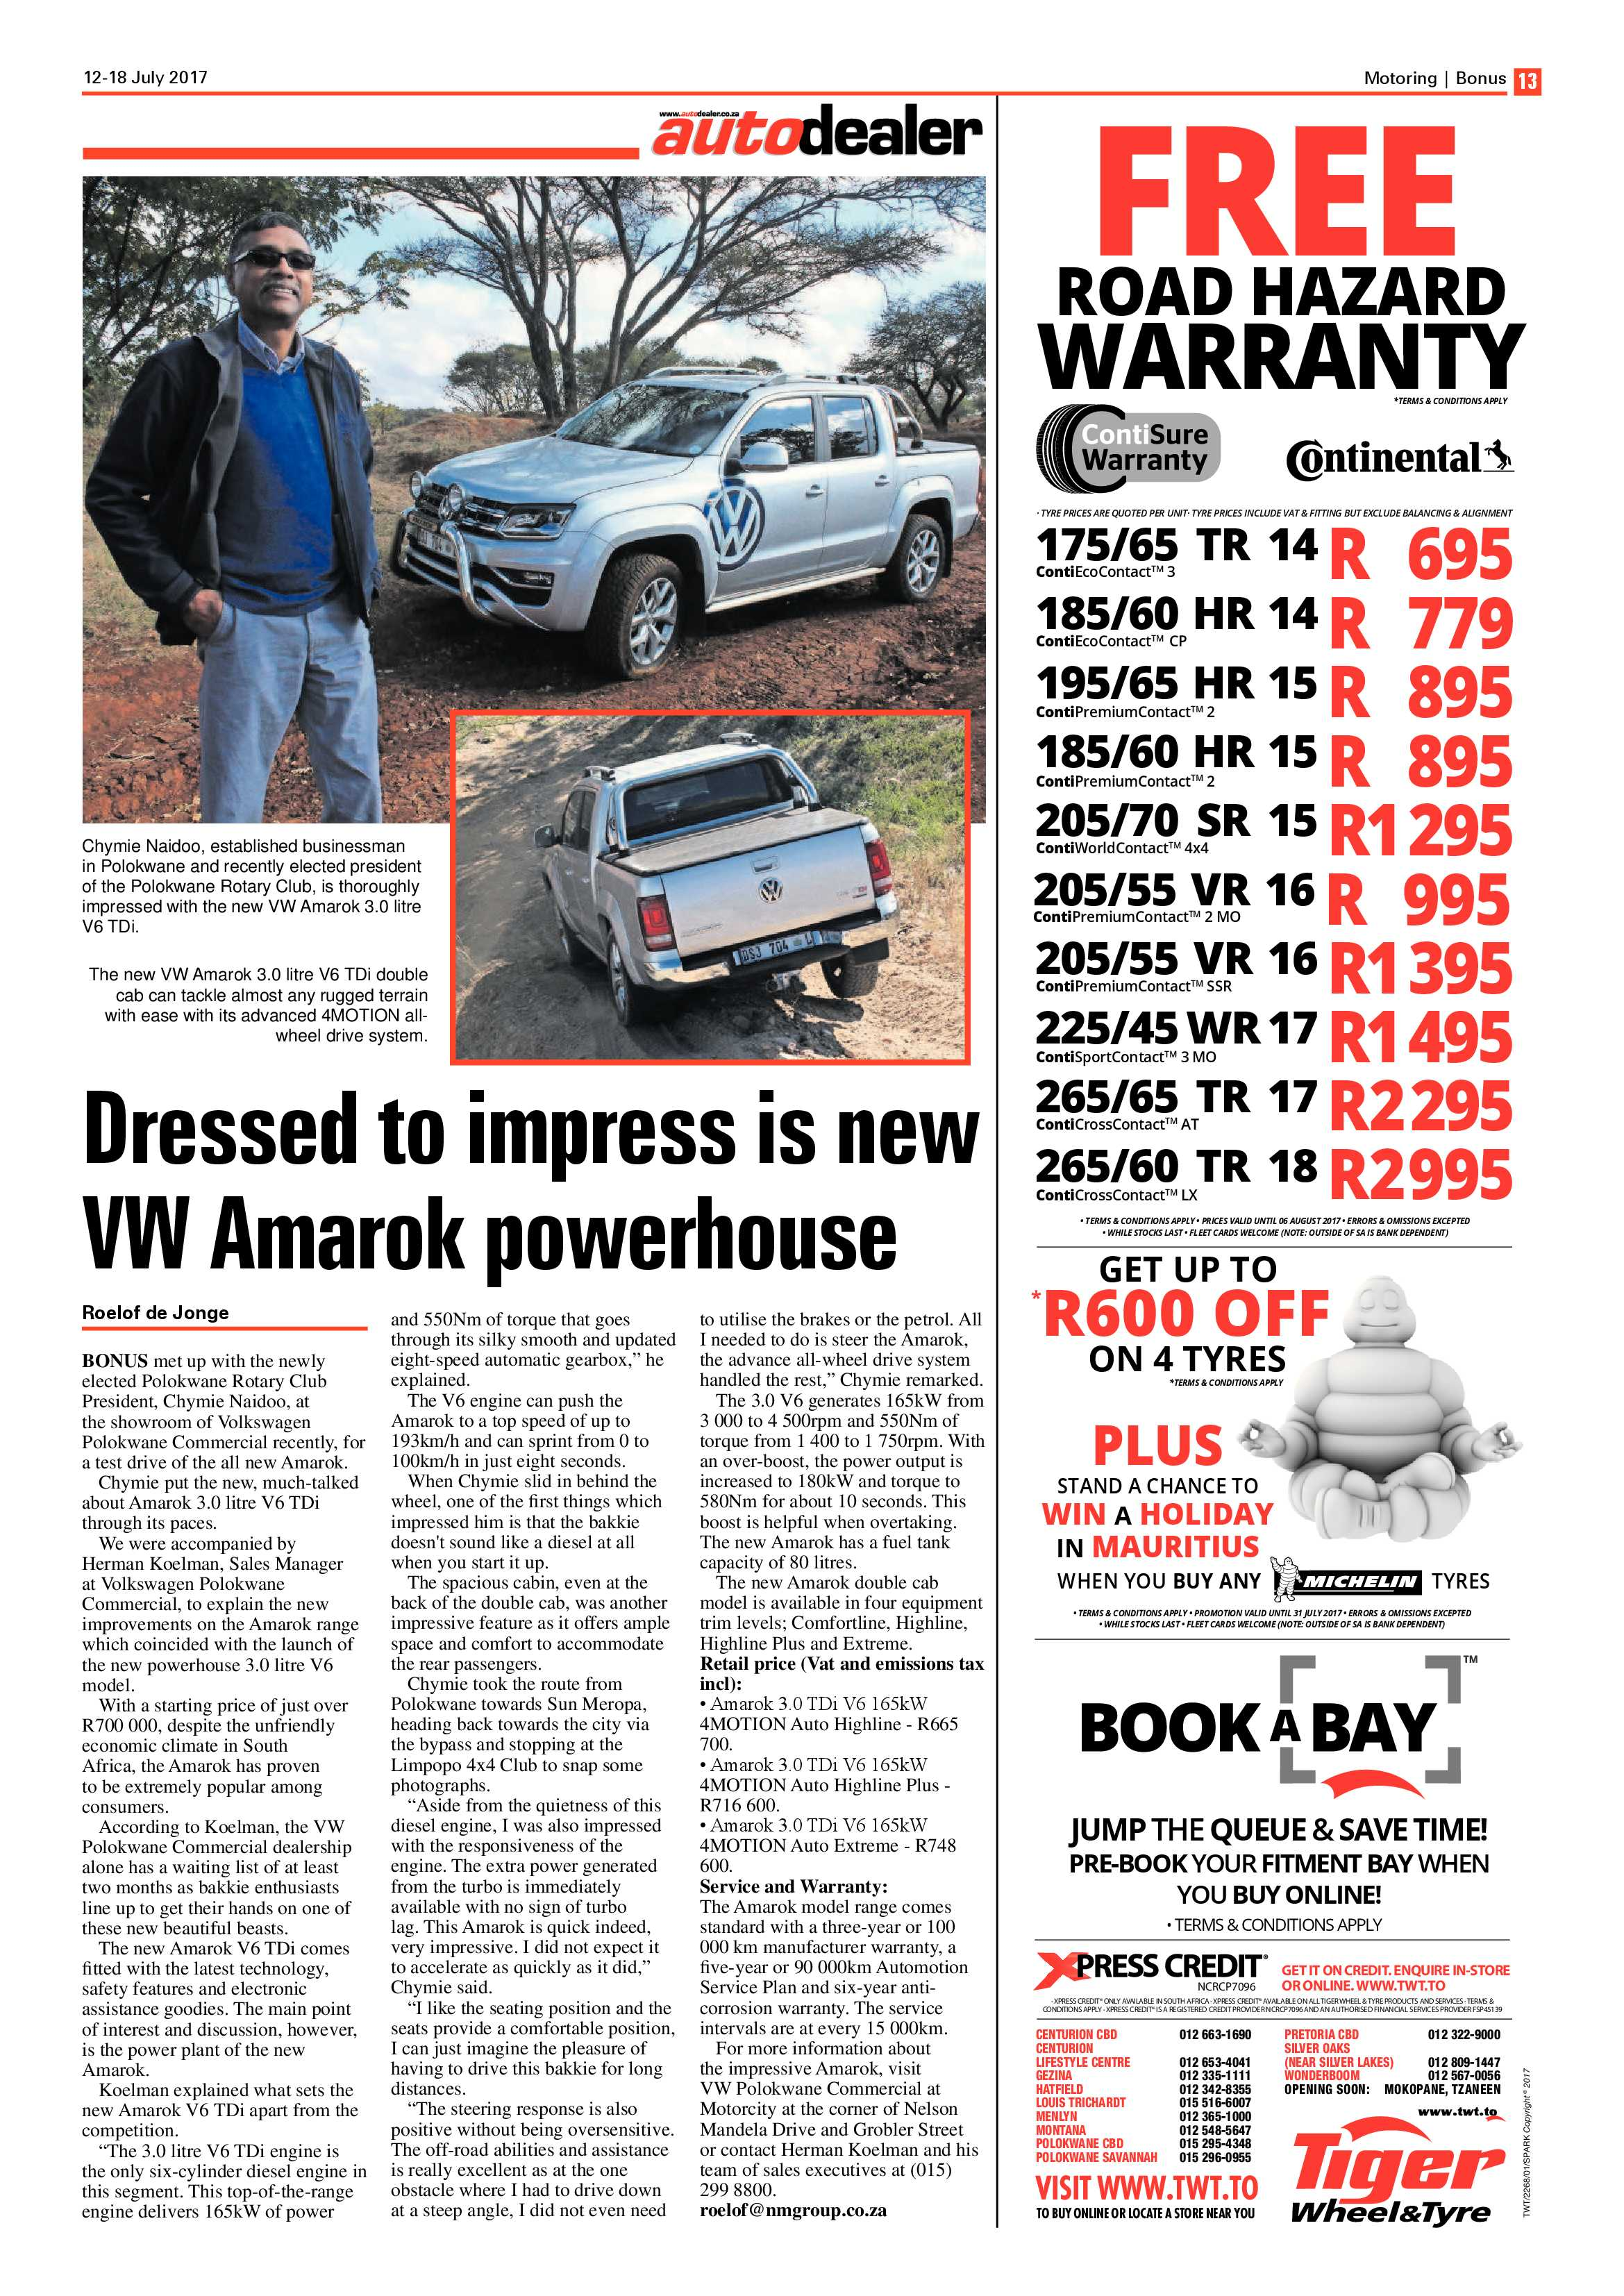 review-bonus-12-july-2017-epapers-page-13